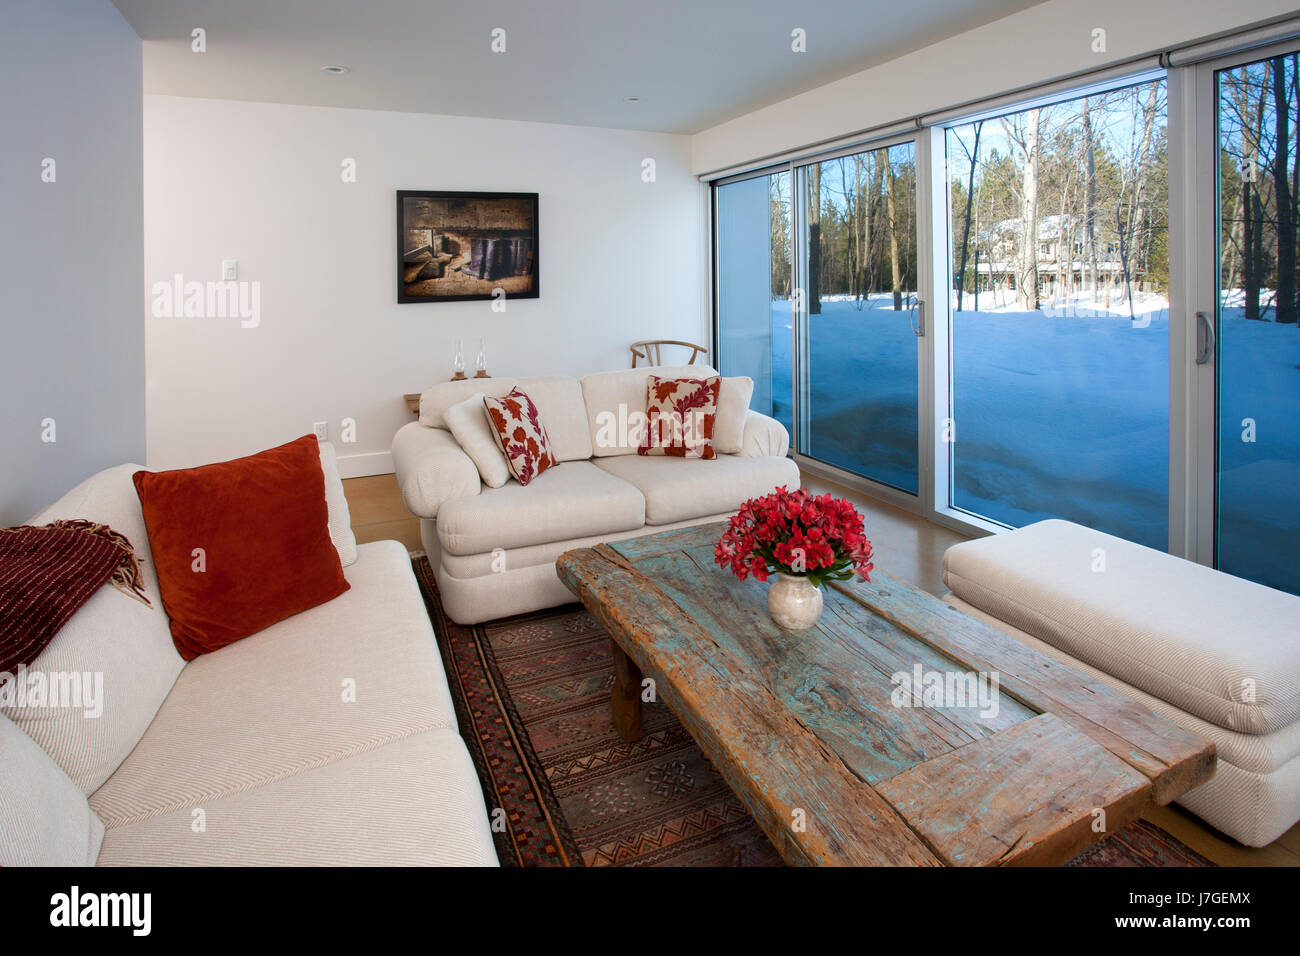 North America, Canada, Ontario, family room with glass wall - Stock Image